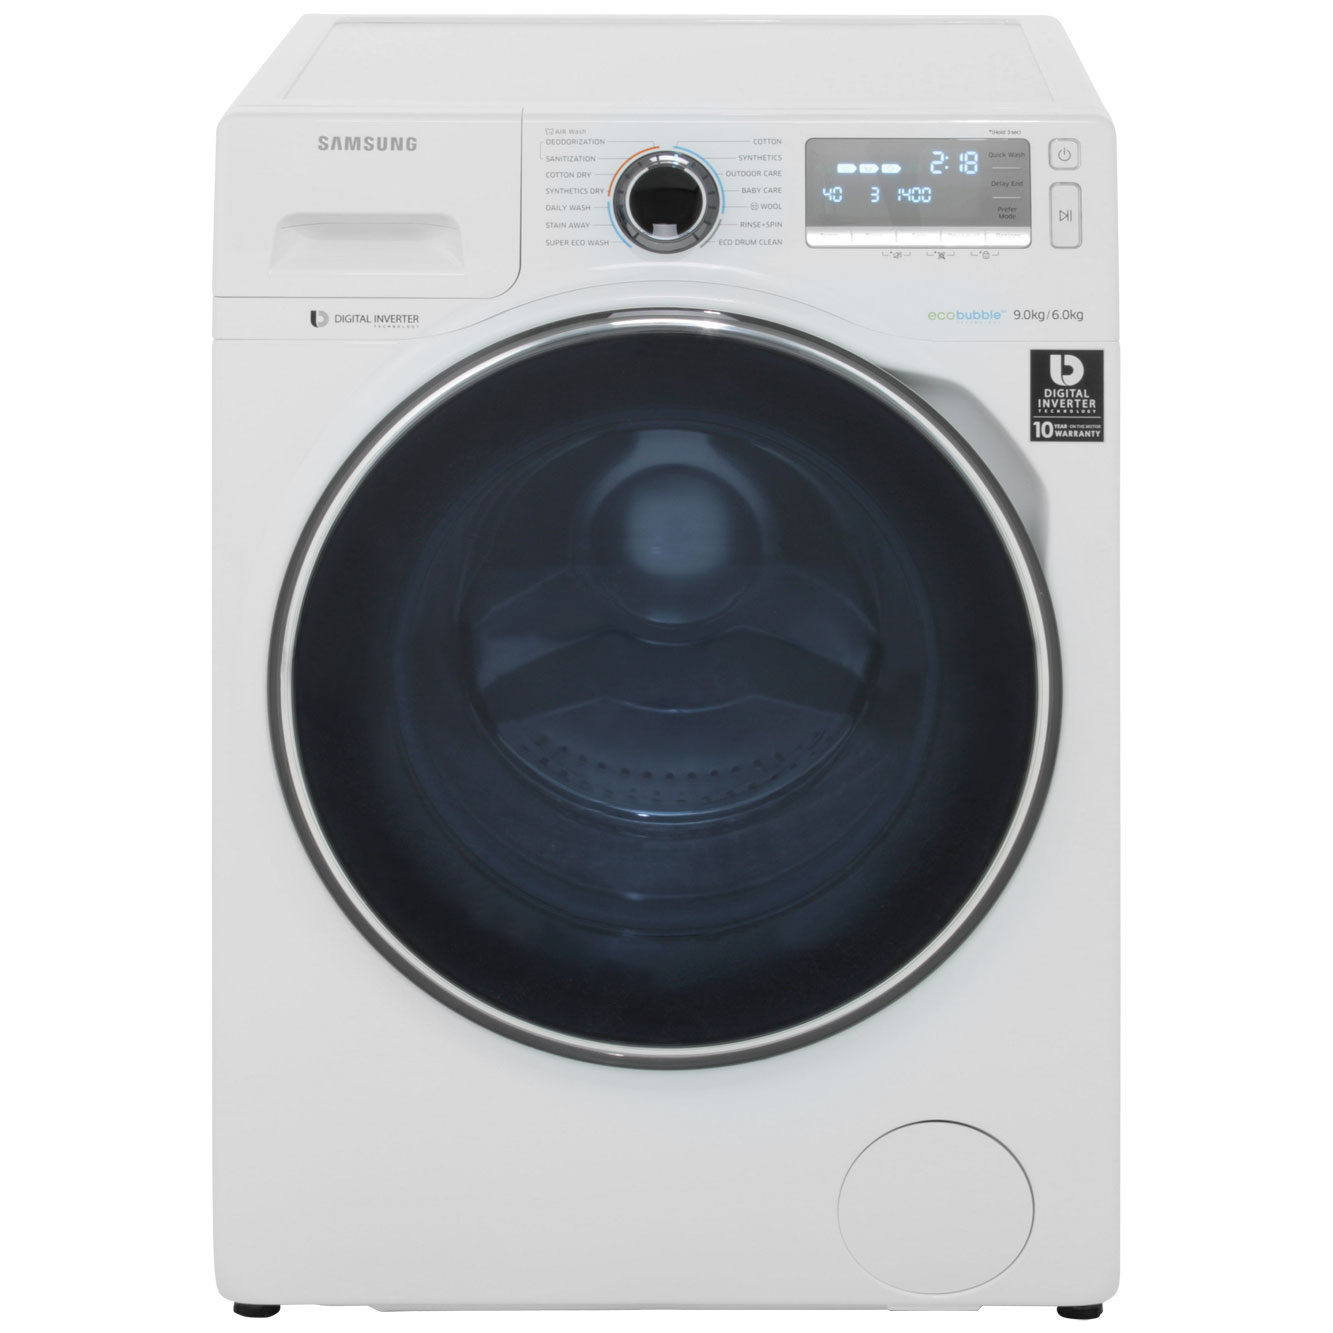 Samsung Ecobubble WD90J7400GW 9Kg / 6Kg Washer Dryer with 1400 rpm - White